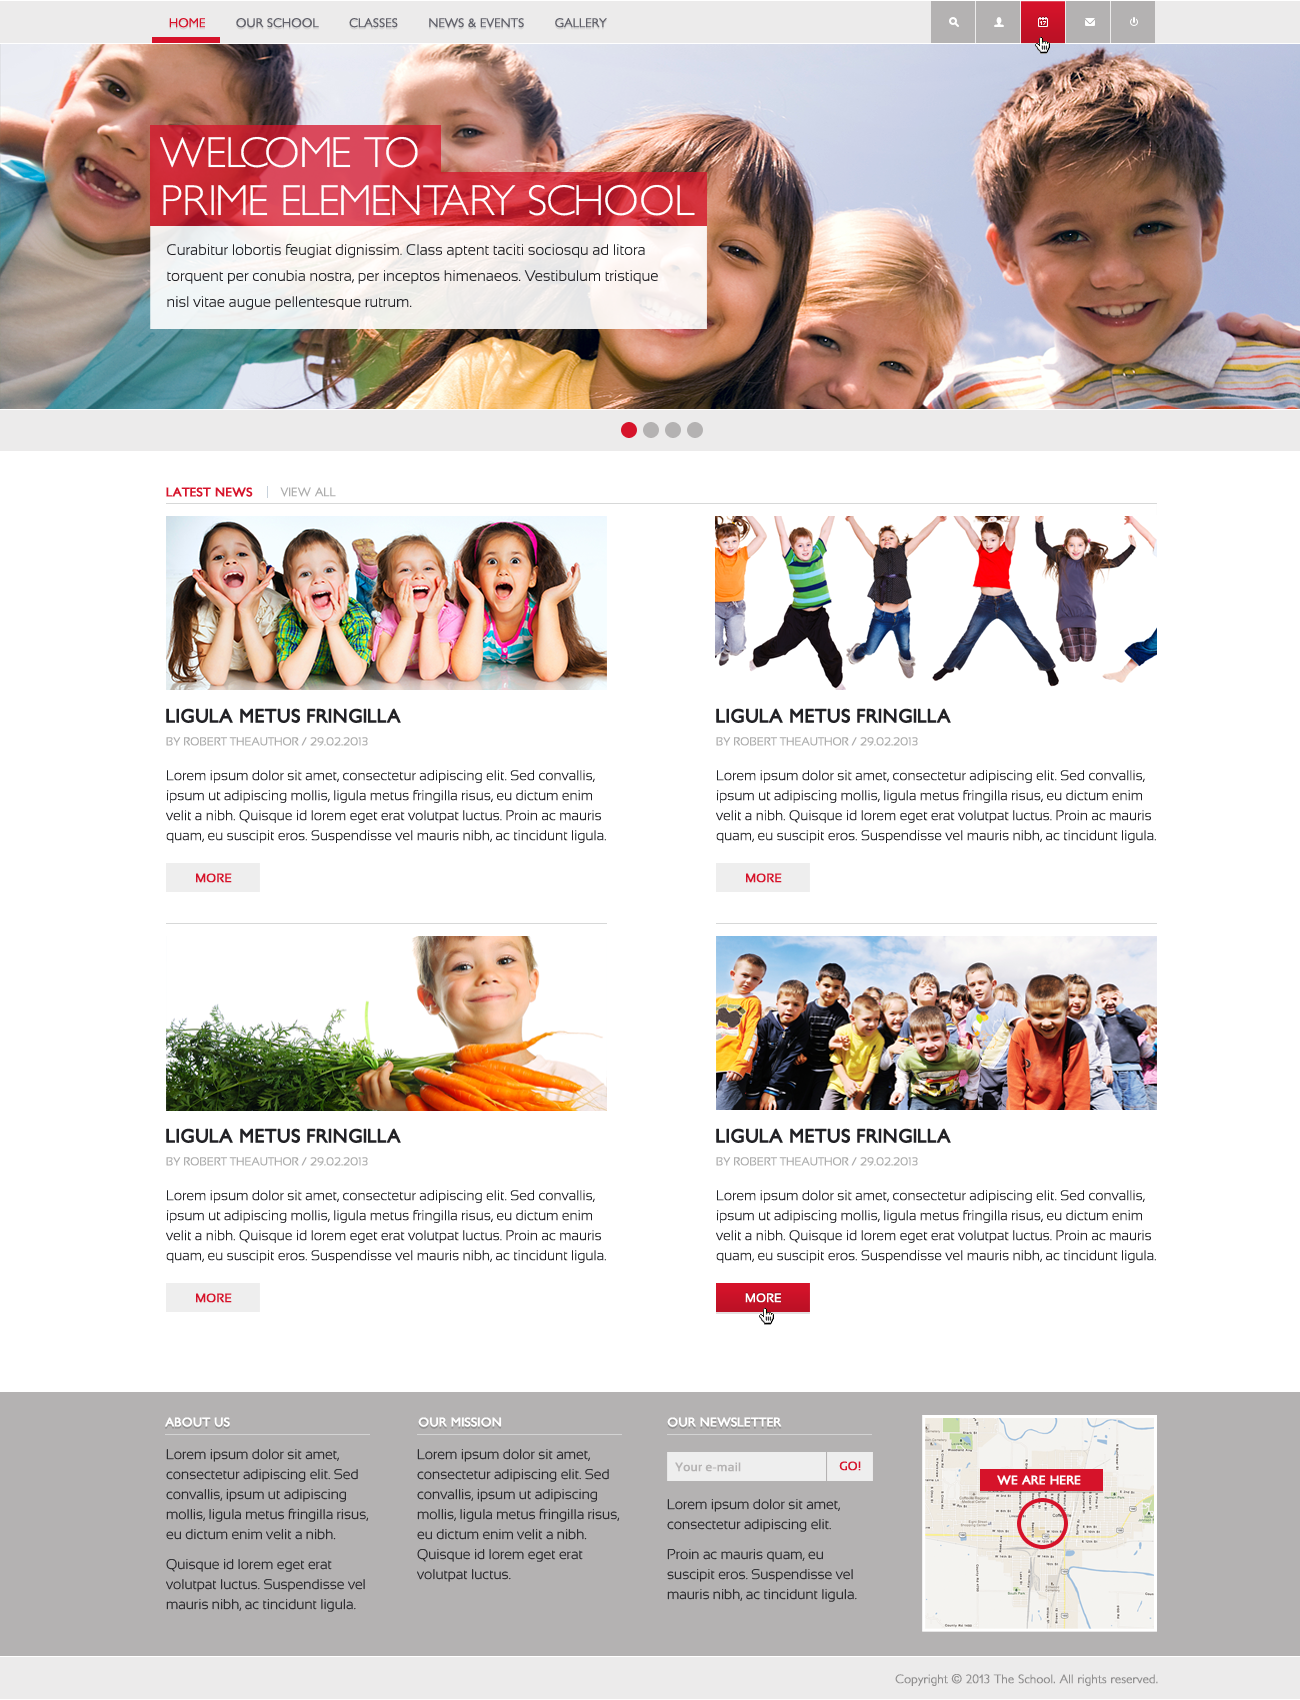 Elementary school web page layout design